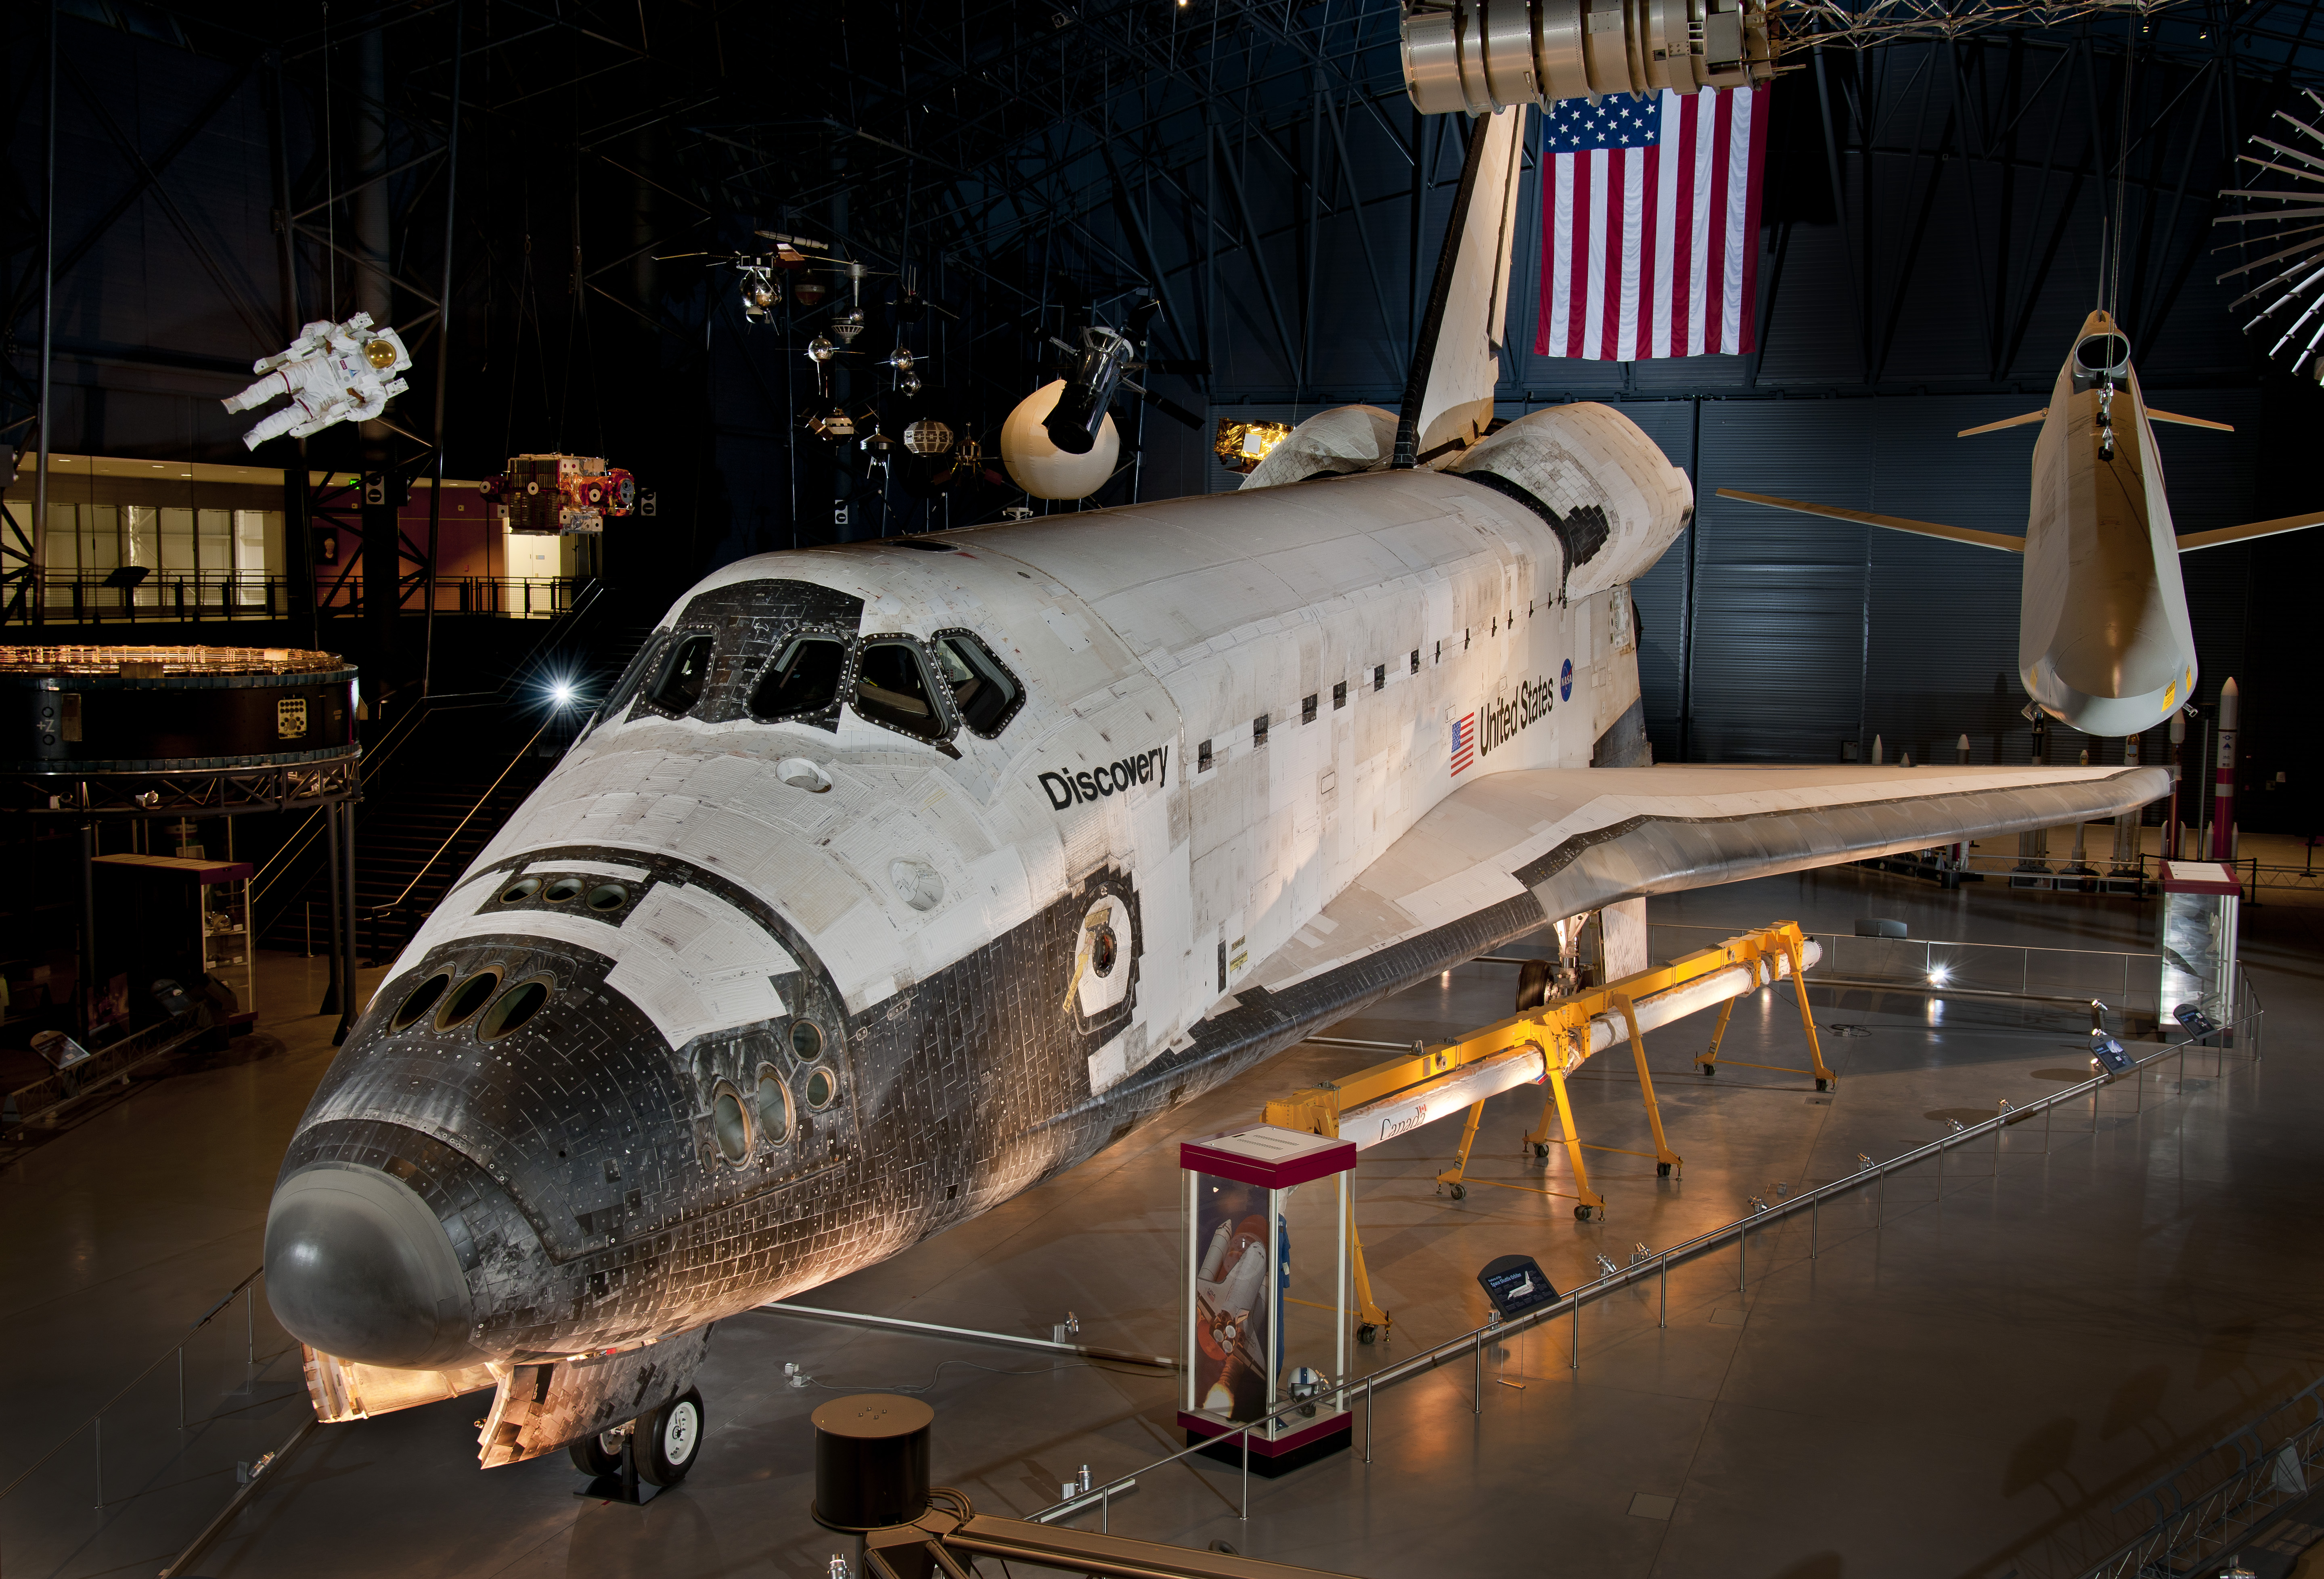 space shuttle discovery - HD5758×3912